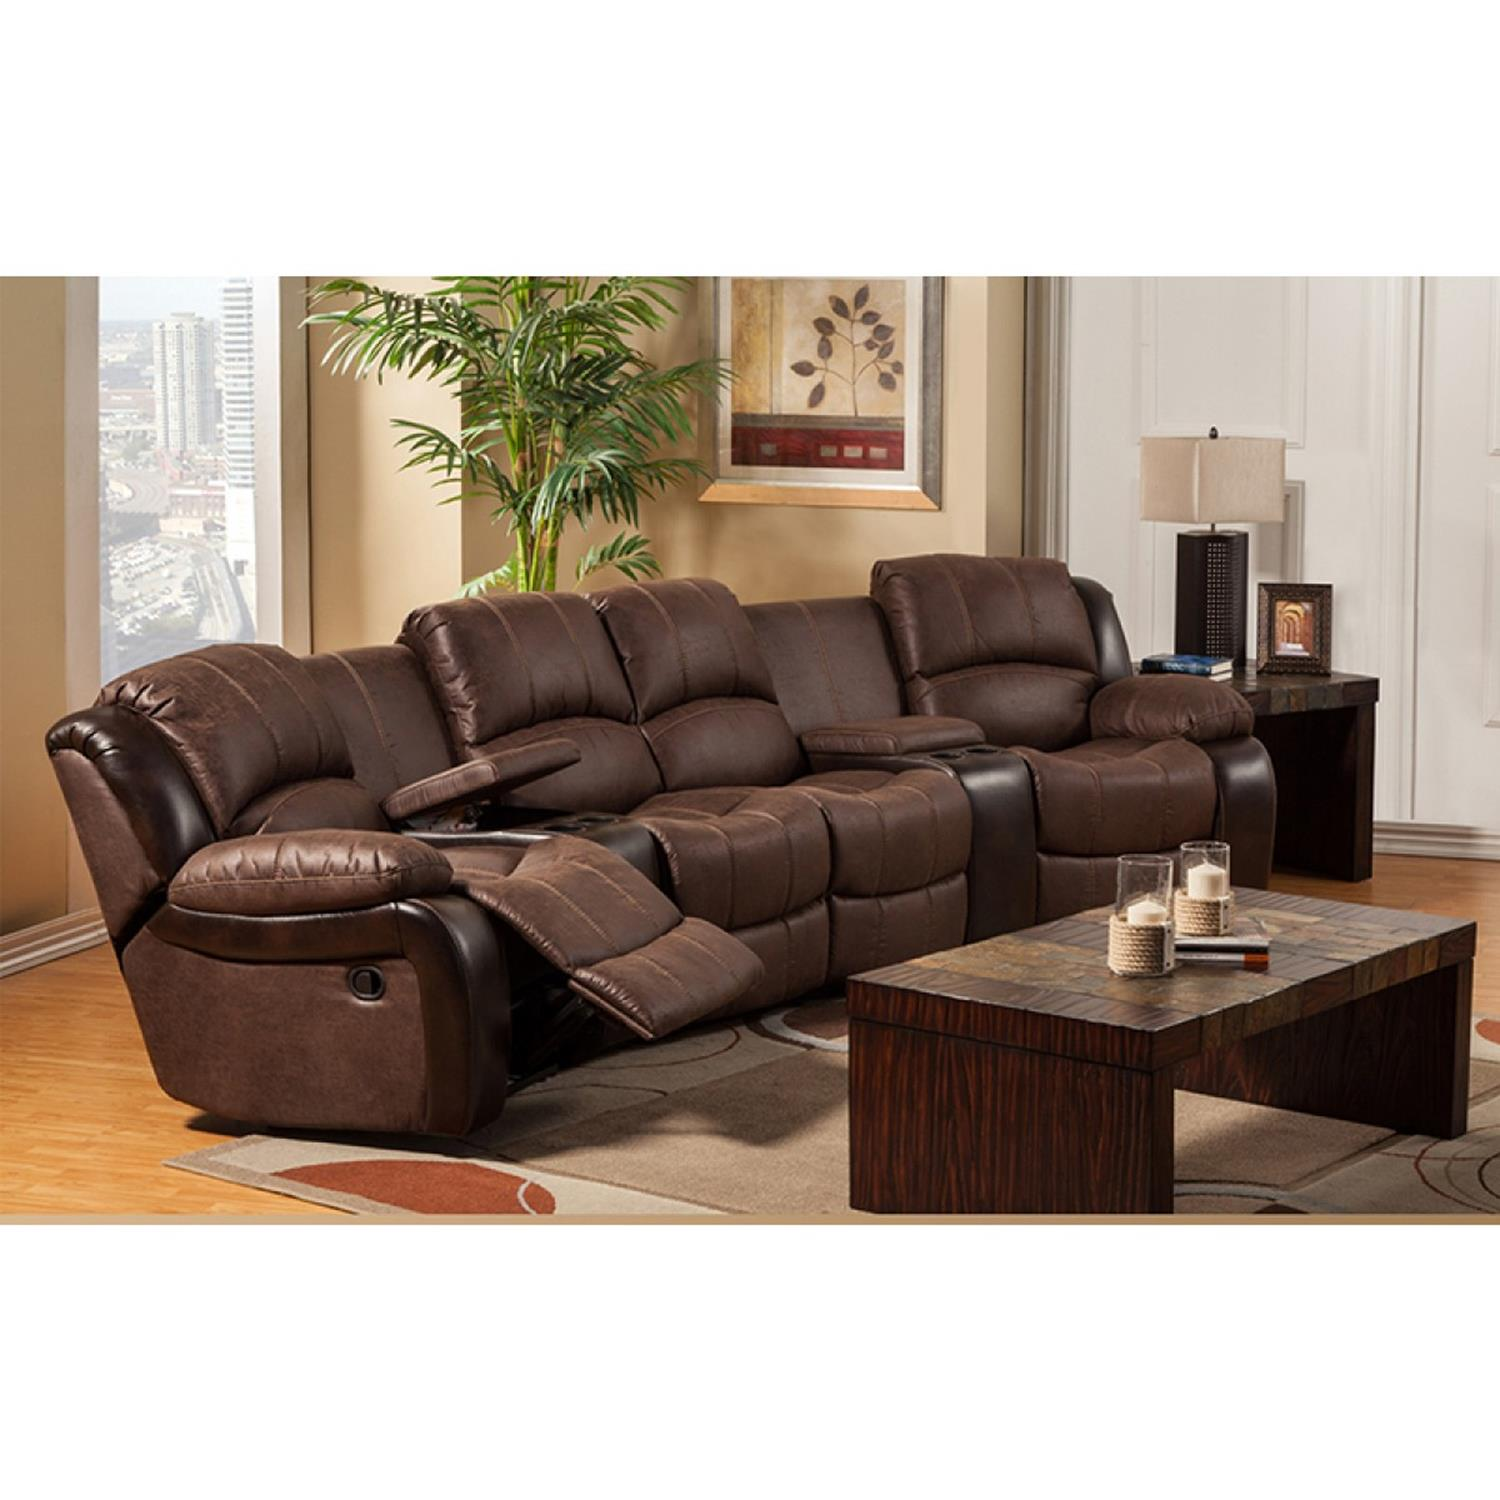 Living Room Theater Fau Phone Number: Home Theater Couch Living Room Furniture 5